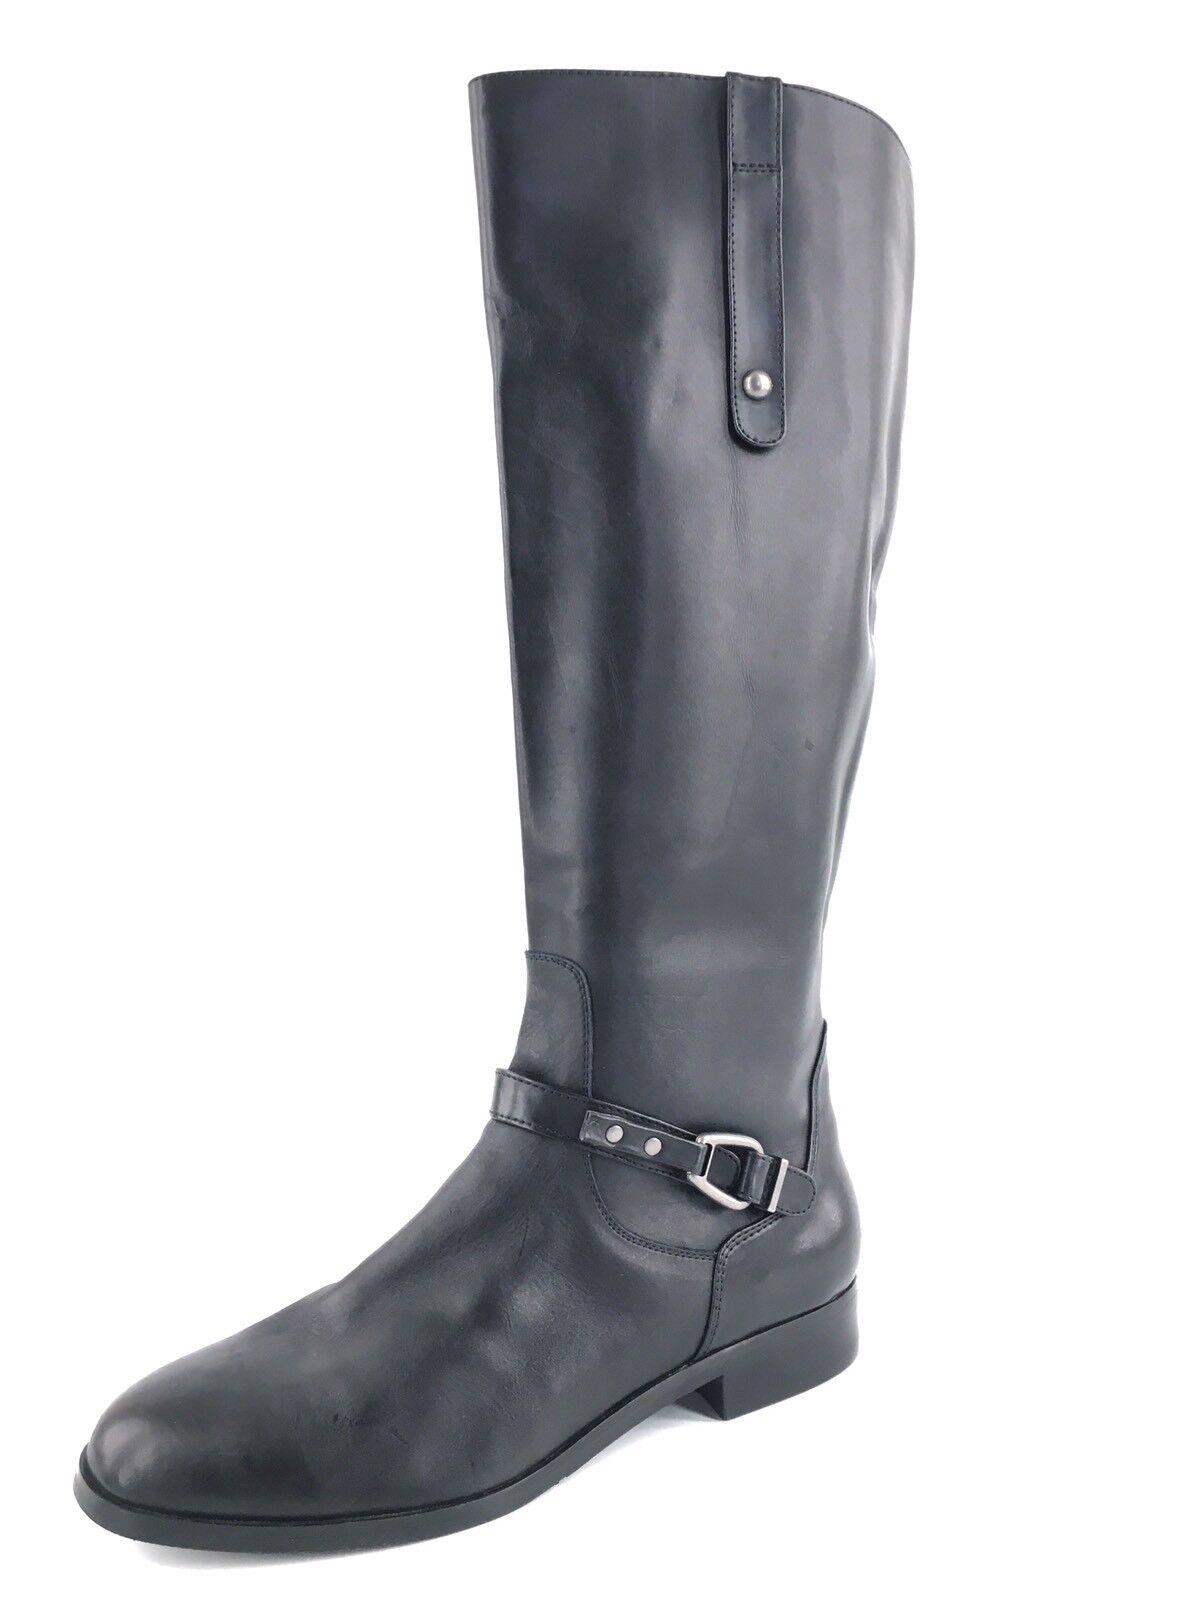 Charles David Rene Black Leather Knee High Riding Boots Women's Size 10 M*